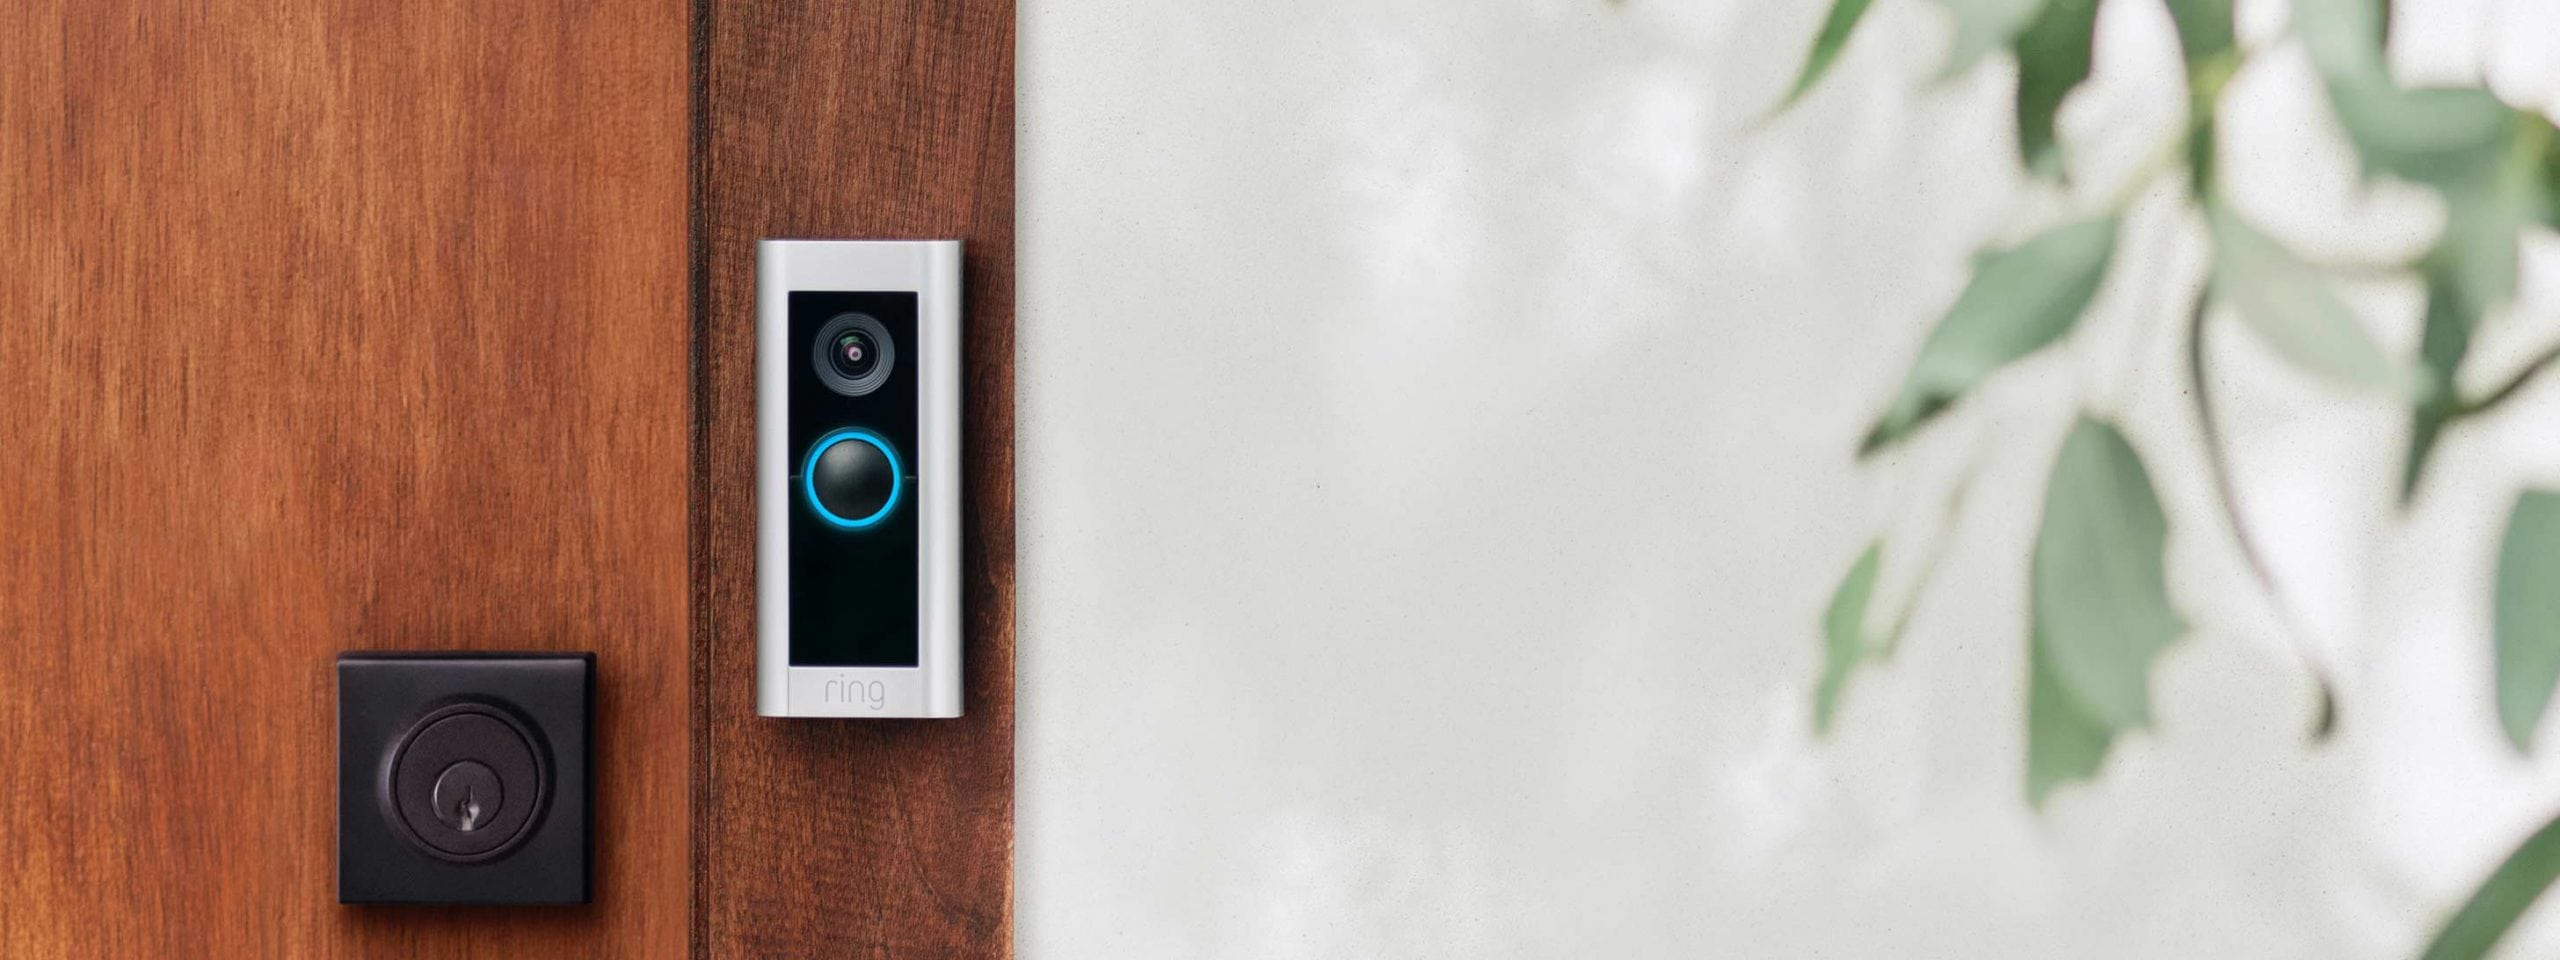 Best Ring Video Doorbell you can get at the moment – Ring Video Doorbell Pro 2 Review